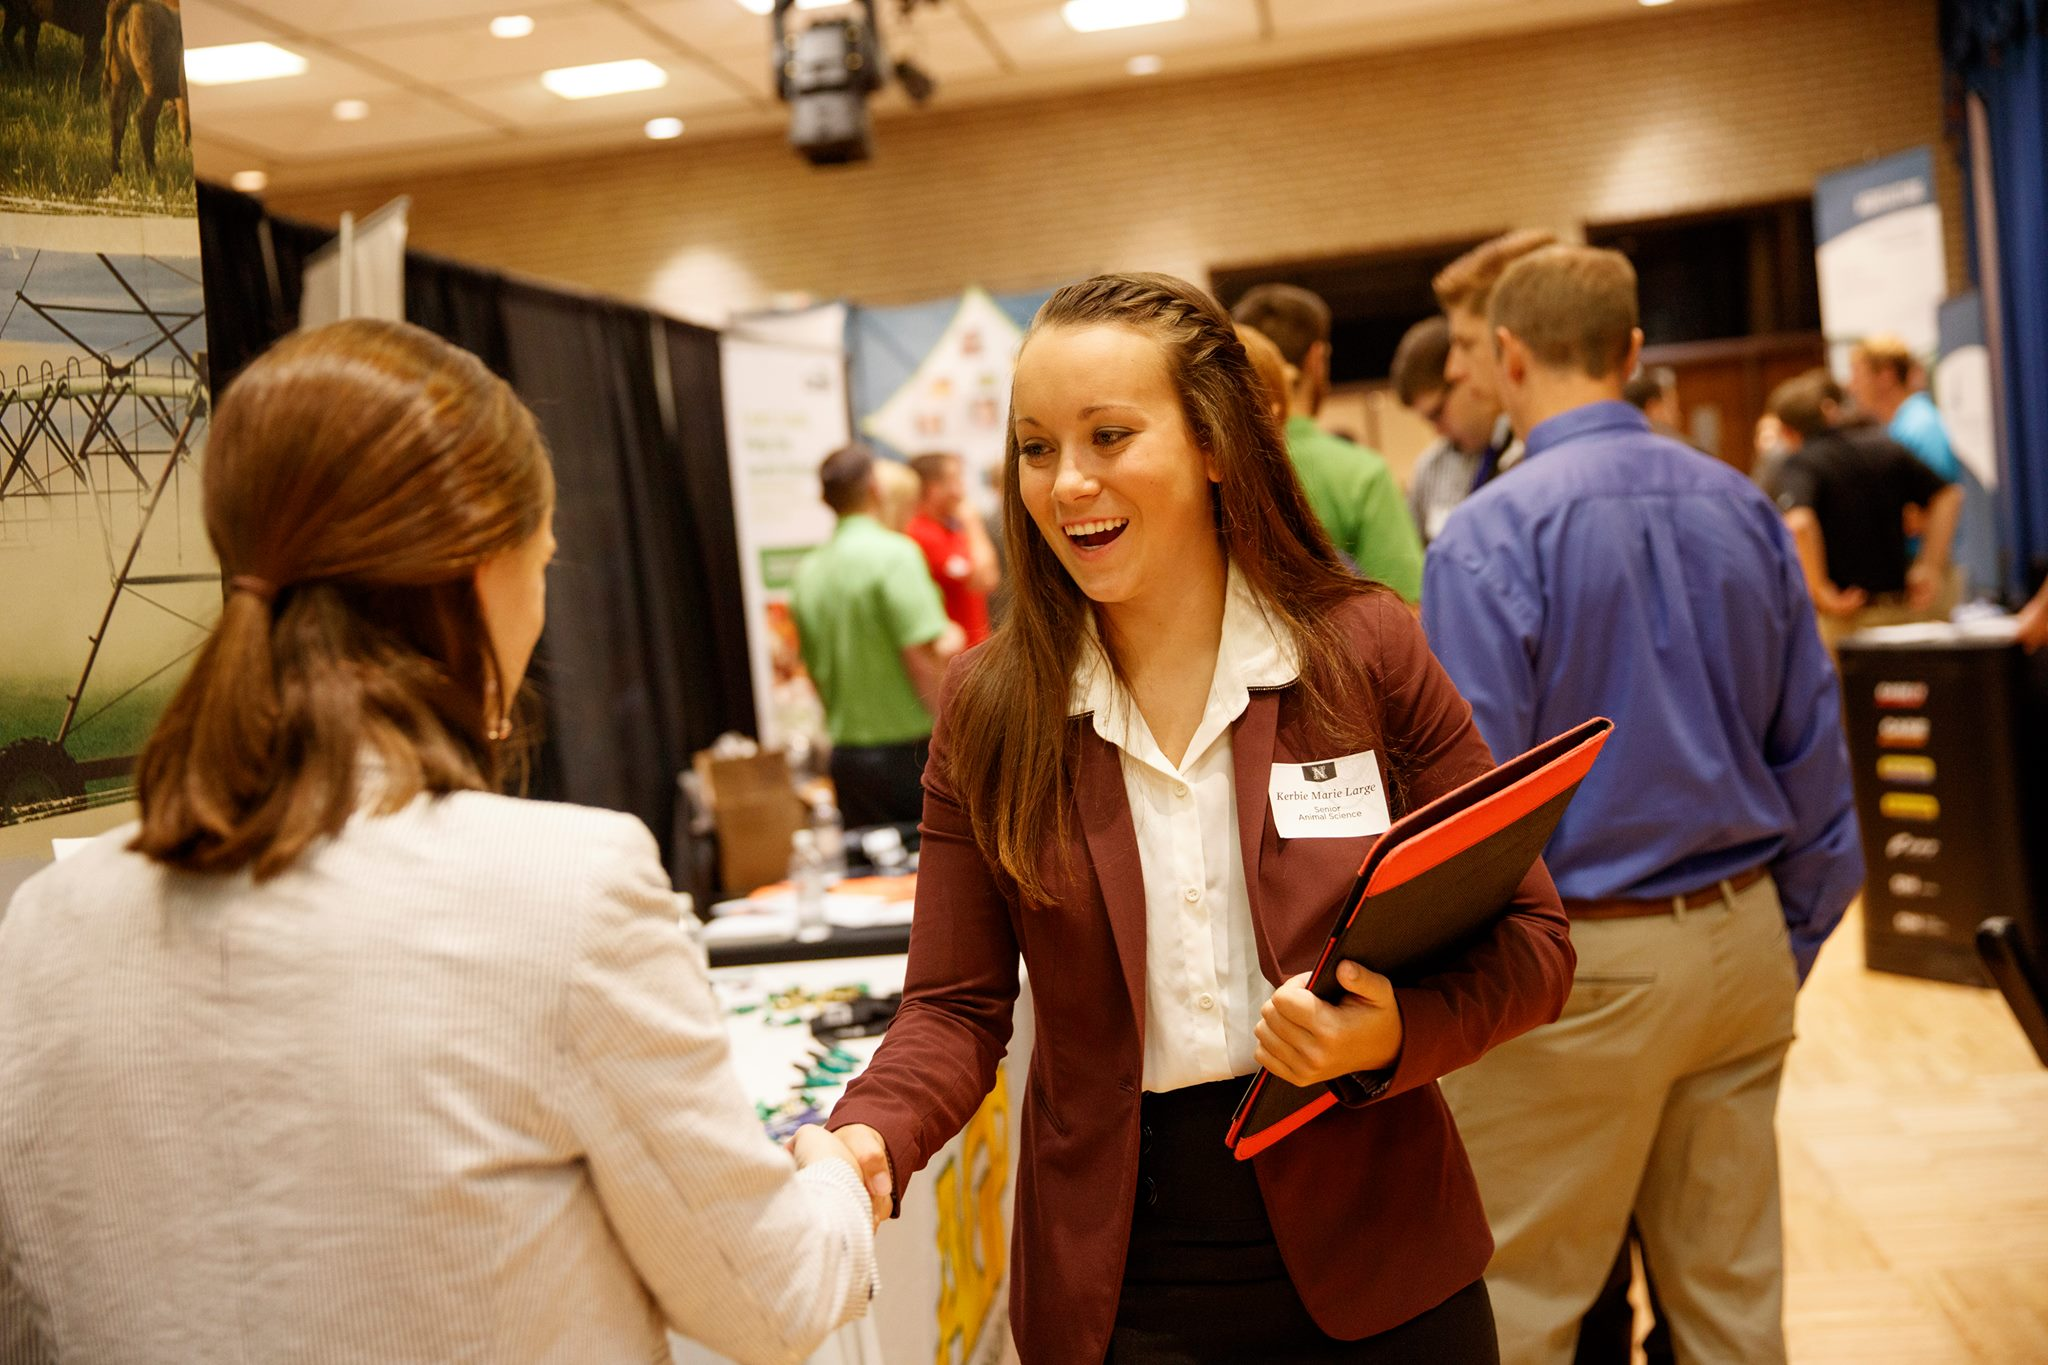 Network with employers at the Agricultural Sciences and Natural Resources fair.